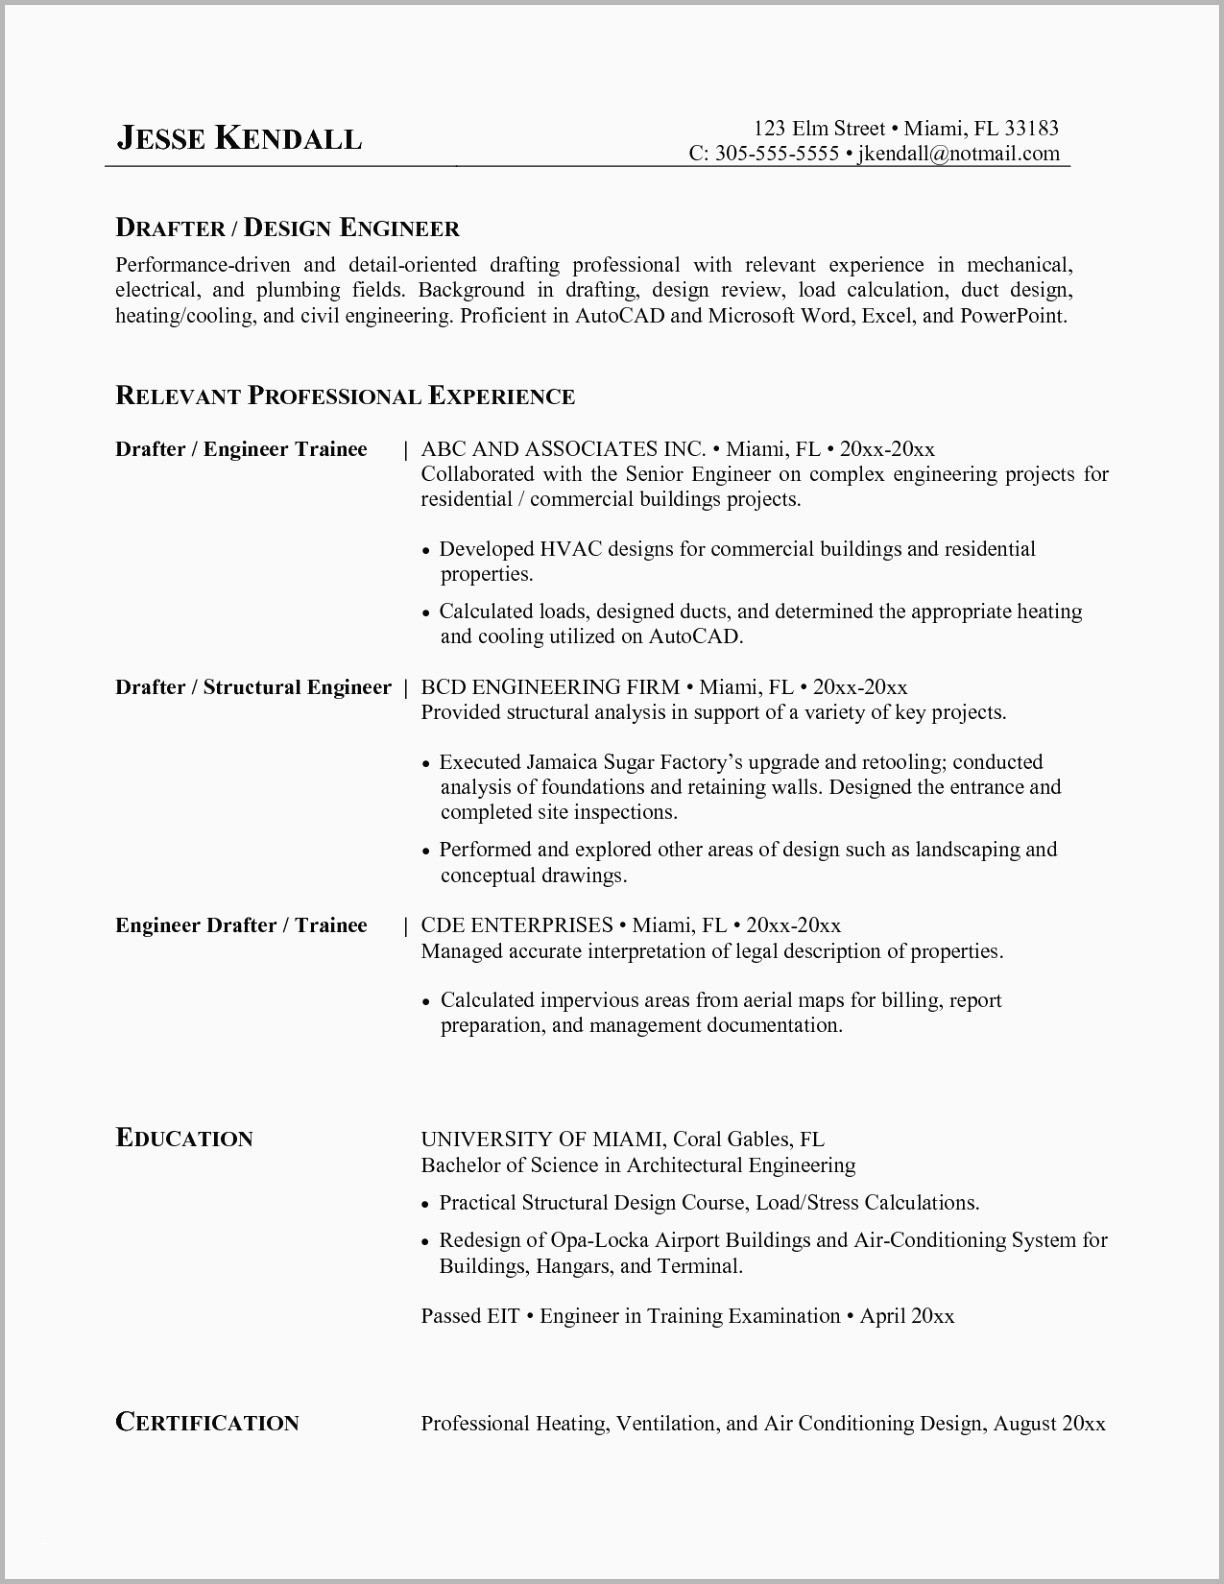 insurance resume template Collection-Gallery Text plexity Analysis Worksheet Insurance Resume Template – Insurance Resumes Example Bsw Resume 0d 7-s